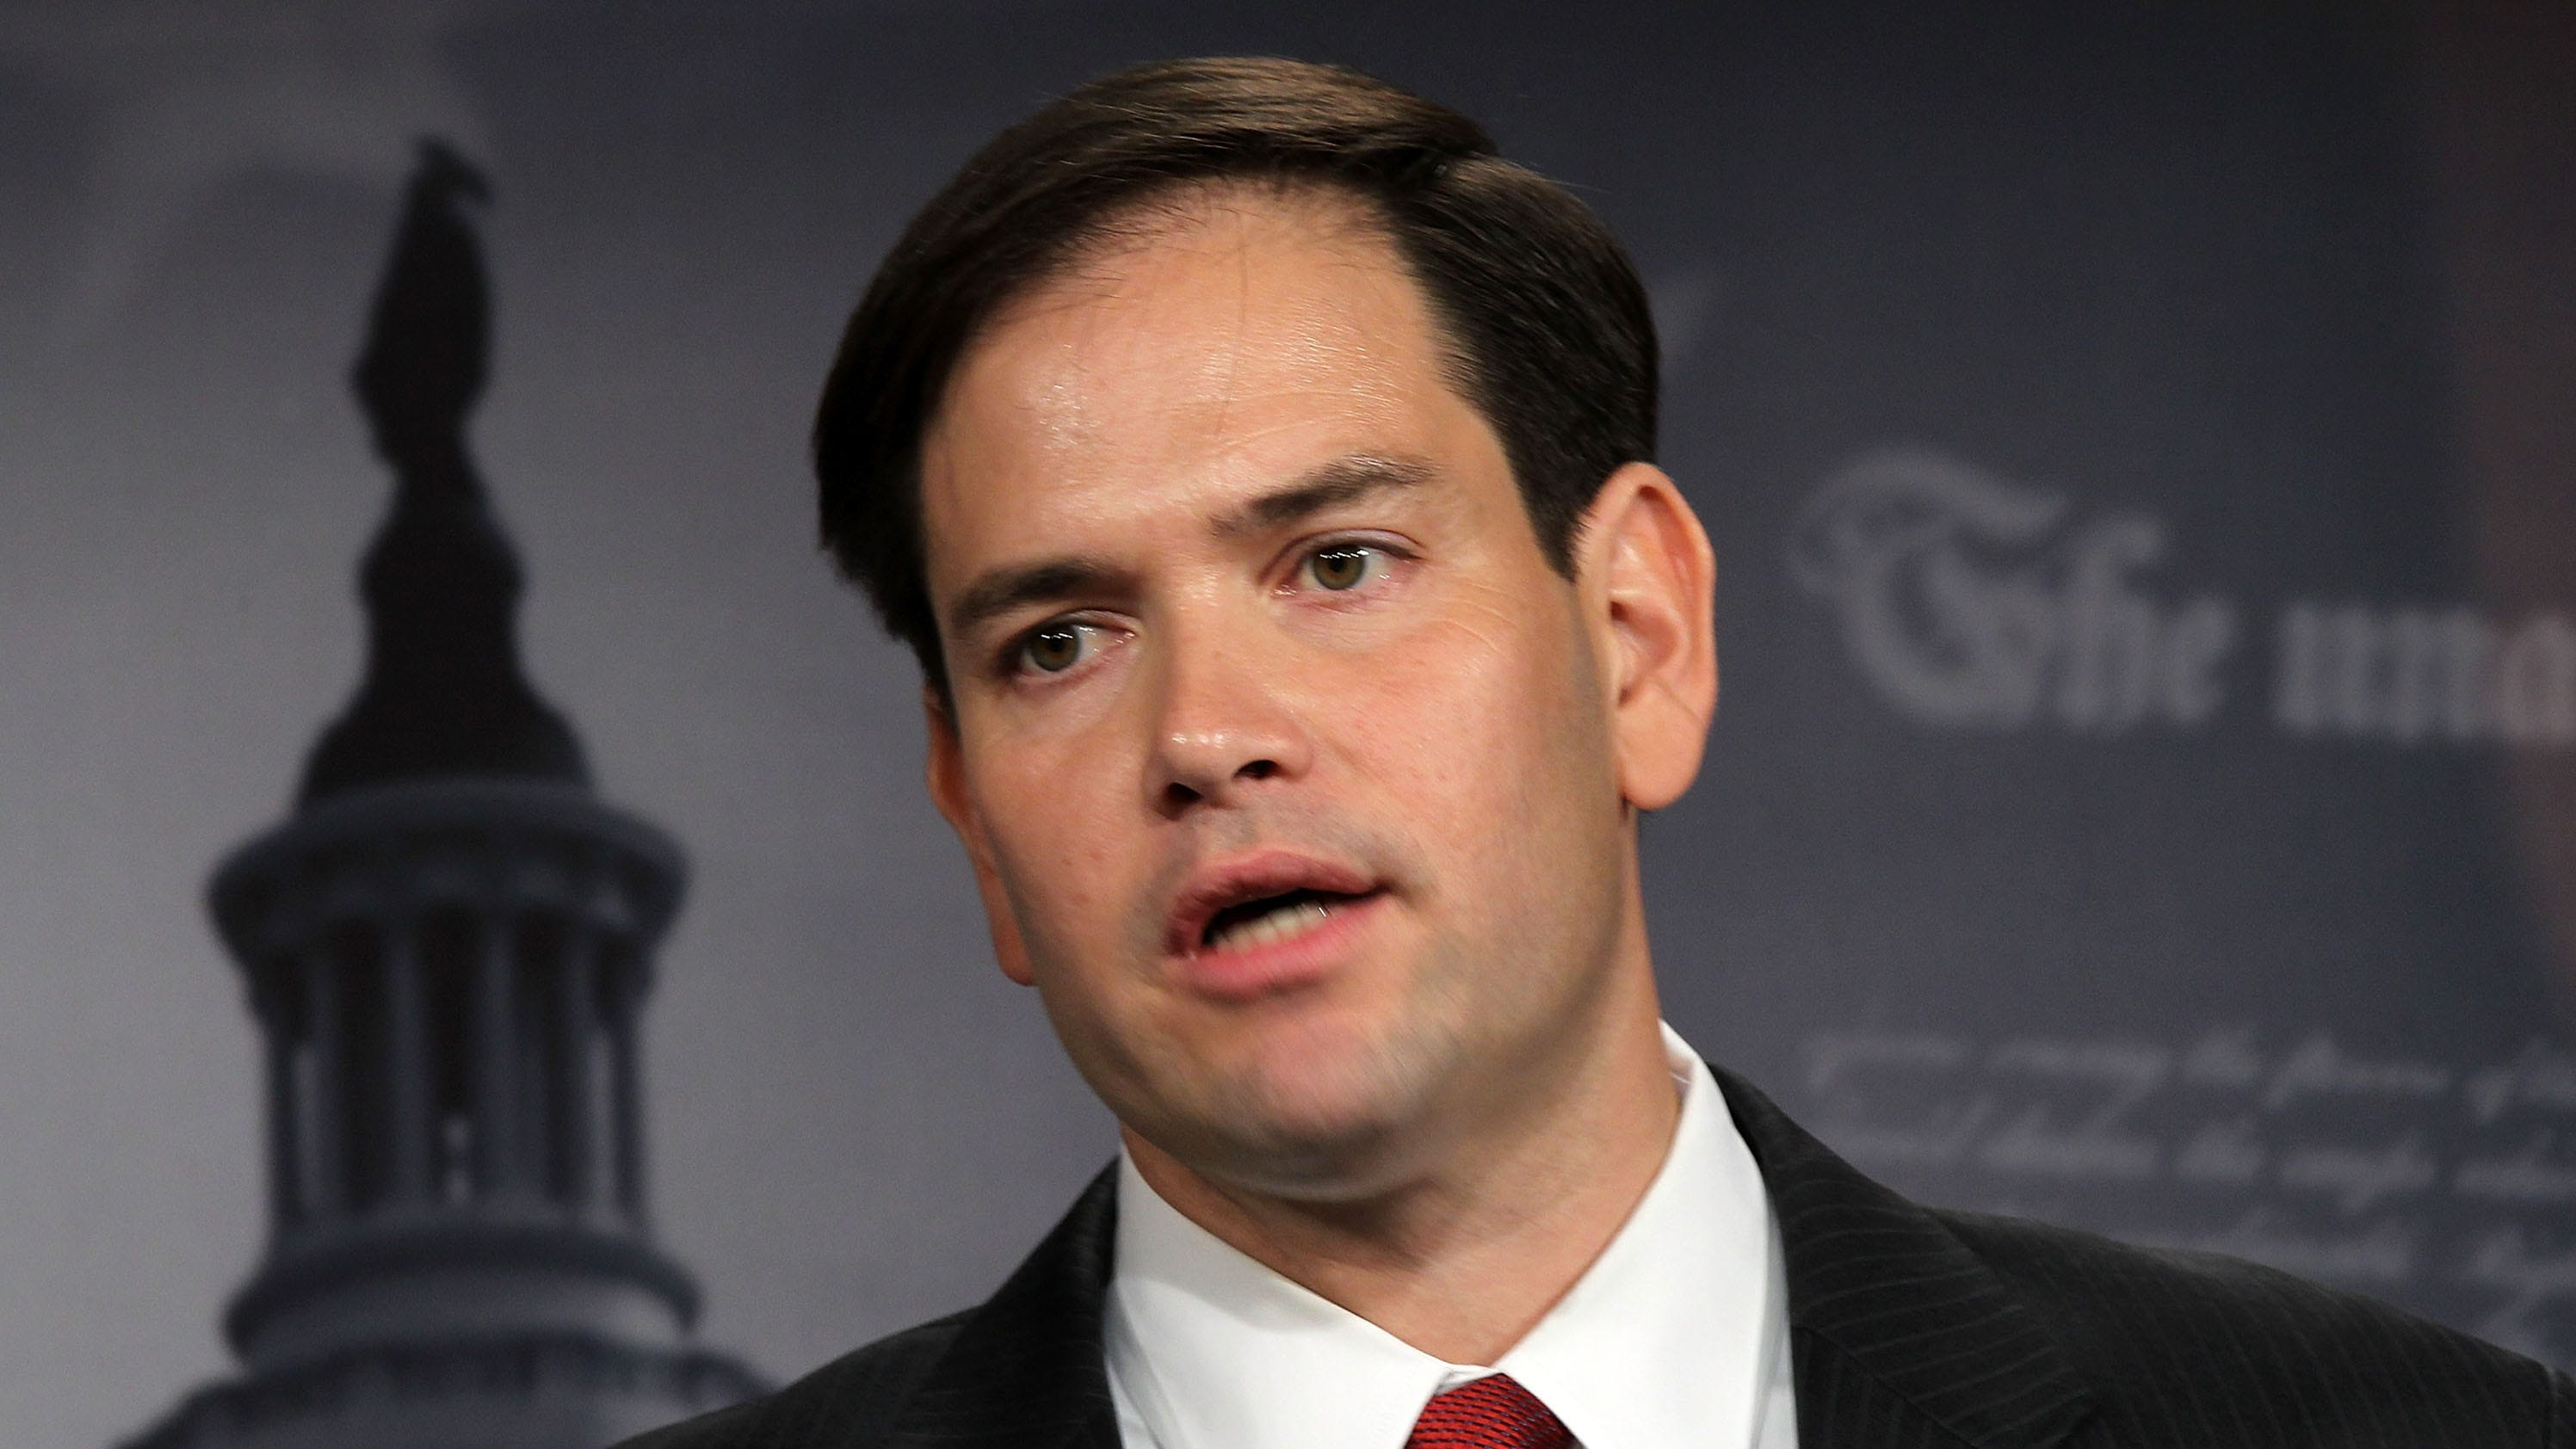 marco rubio is top choice for vp among gop voters in poll | fox news